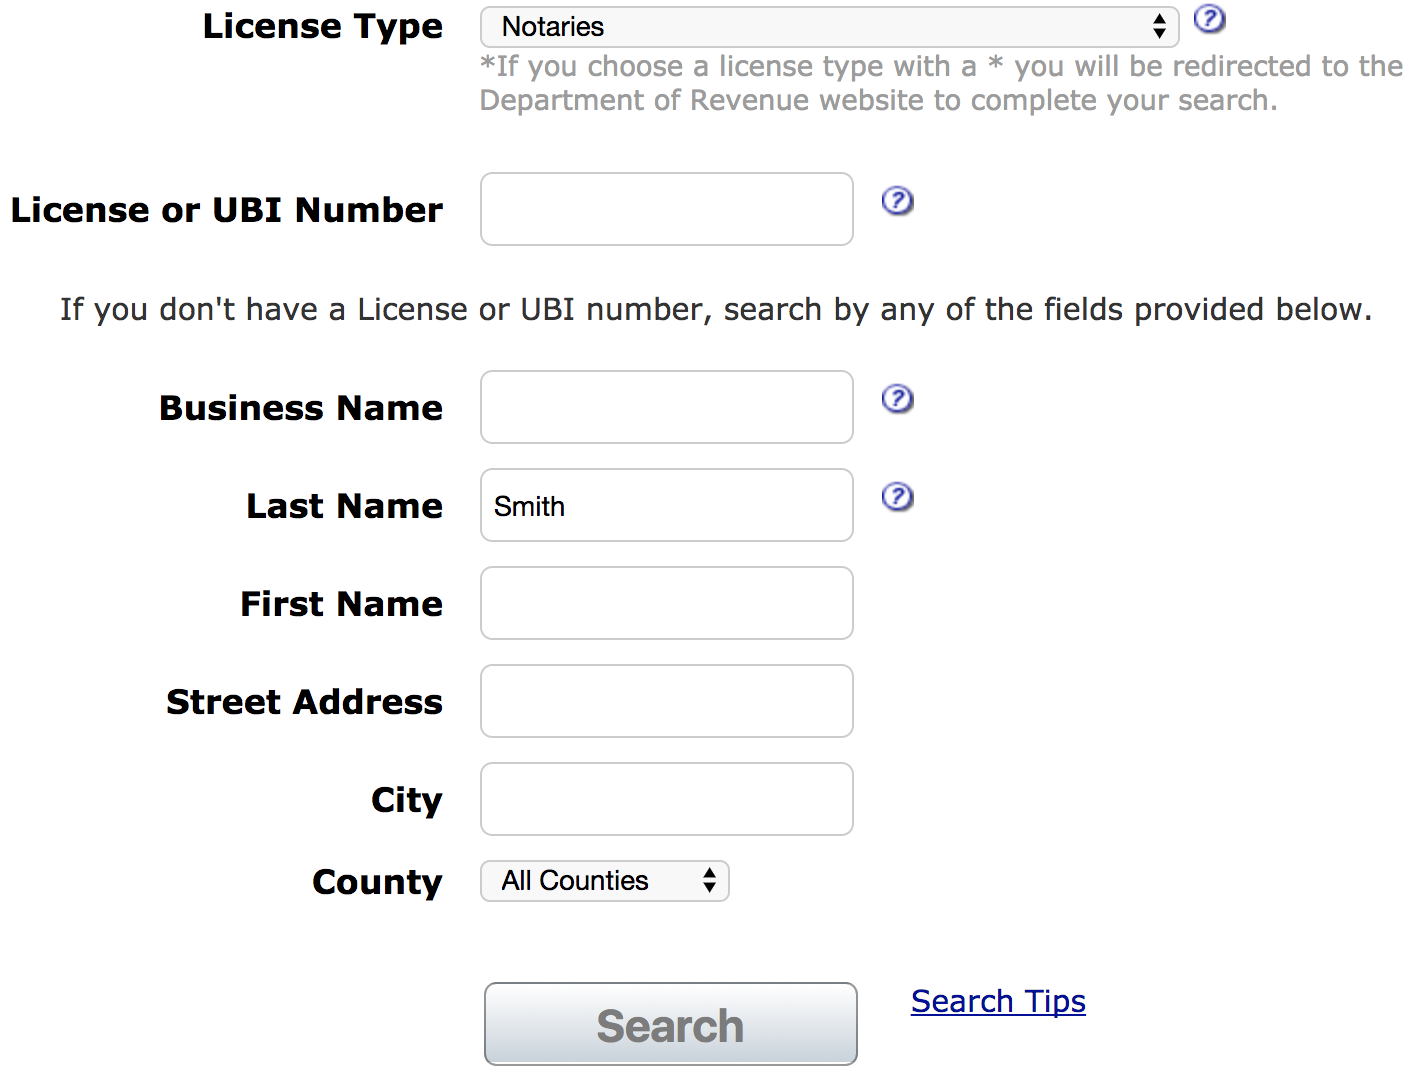 Scroll Through The List Of Notary Names And Select One 1 To Review More Information On Individual